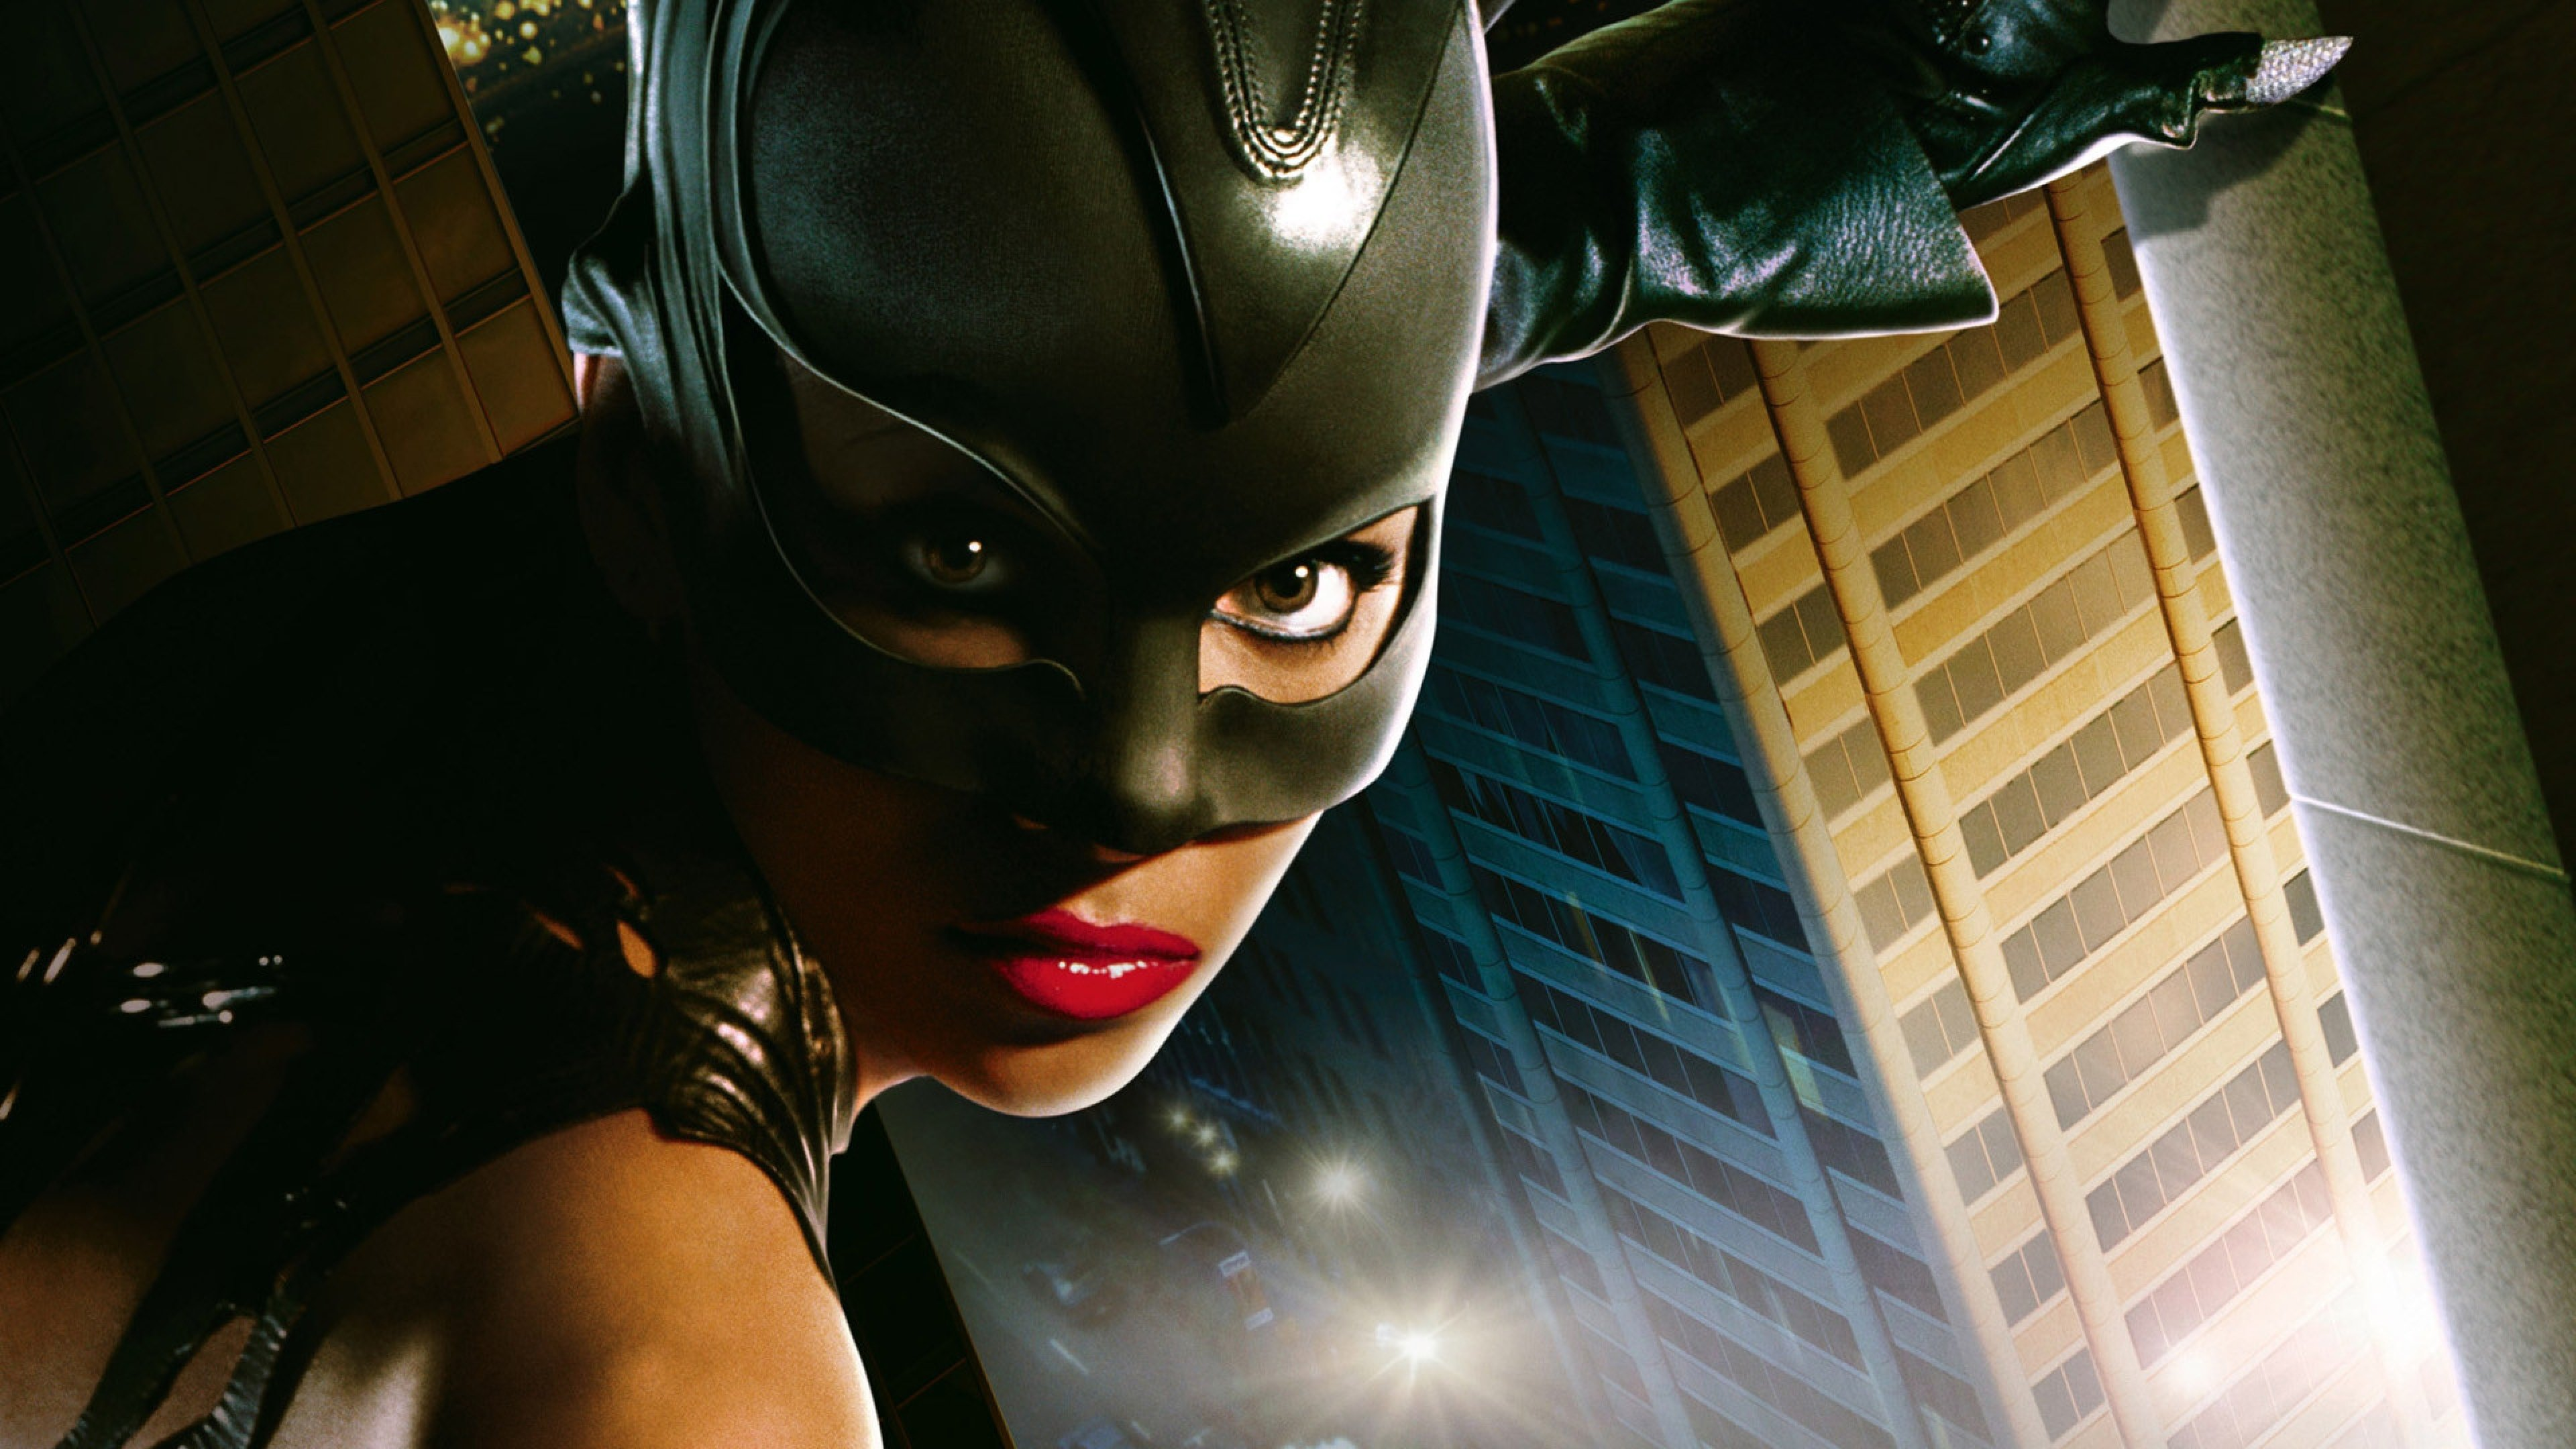 Wallpaper catwoman girl mask lips look face eyes halle berry 3840x2160